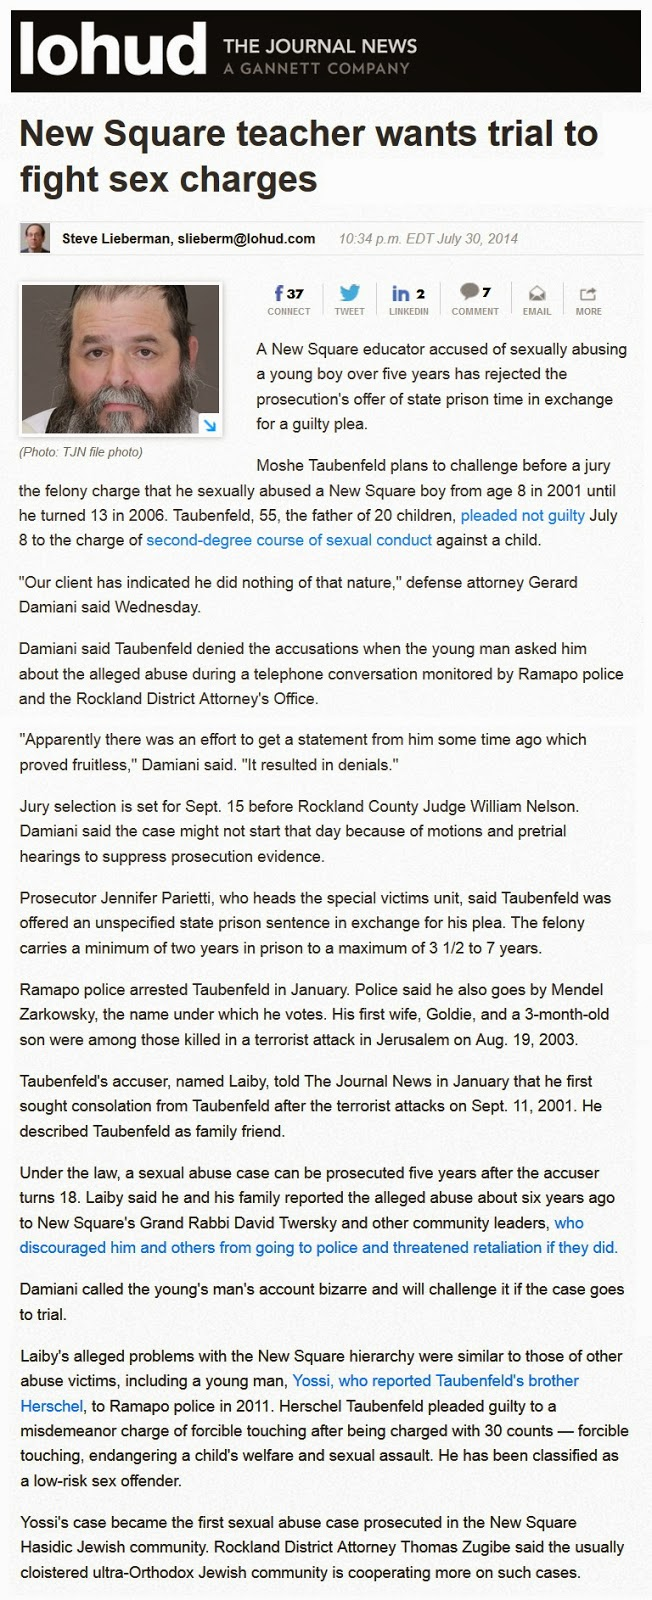 http://www.lohud.com/story/news/crime/2014/07/30/moshe-taubenfeld-sexual-abuse-new-square-trial/13367951/